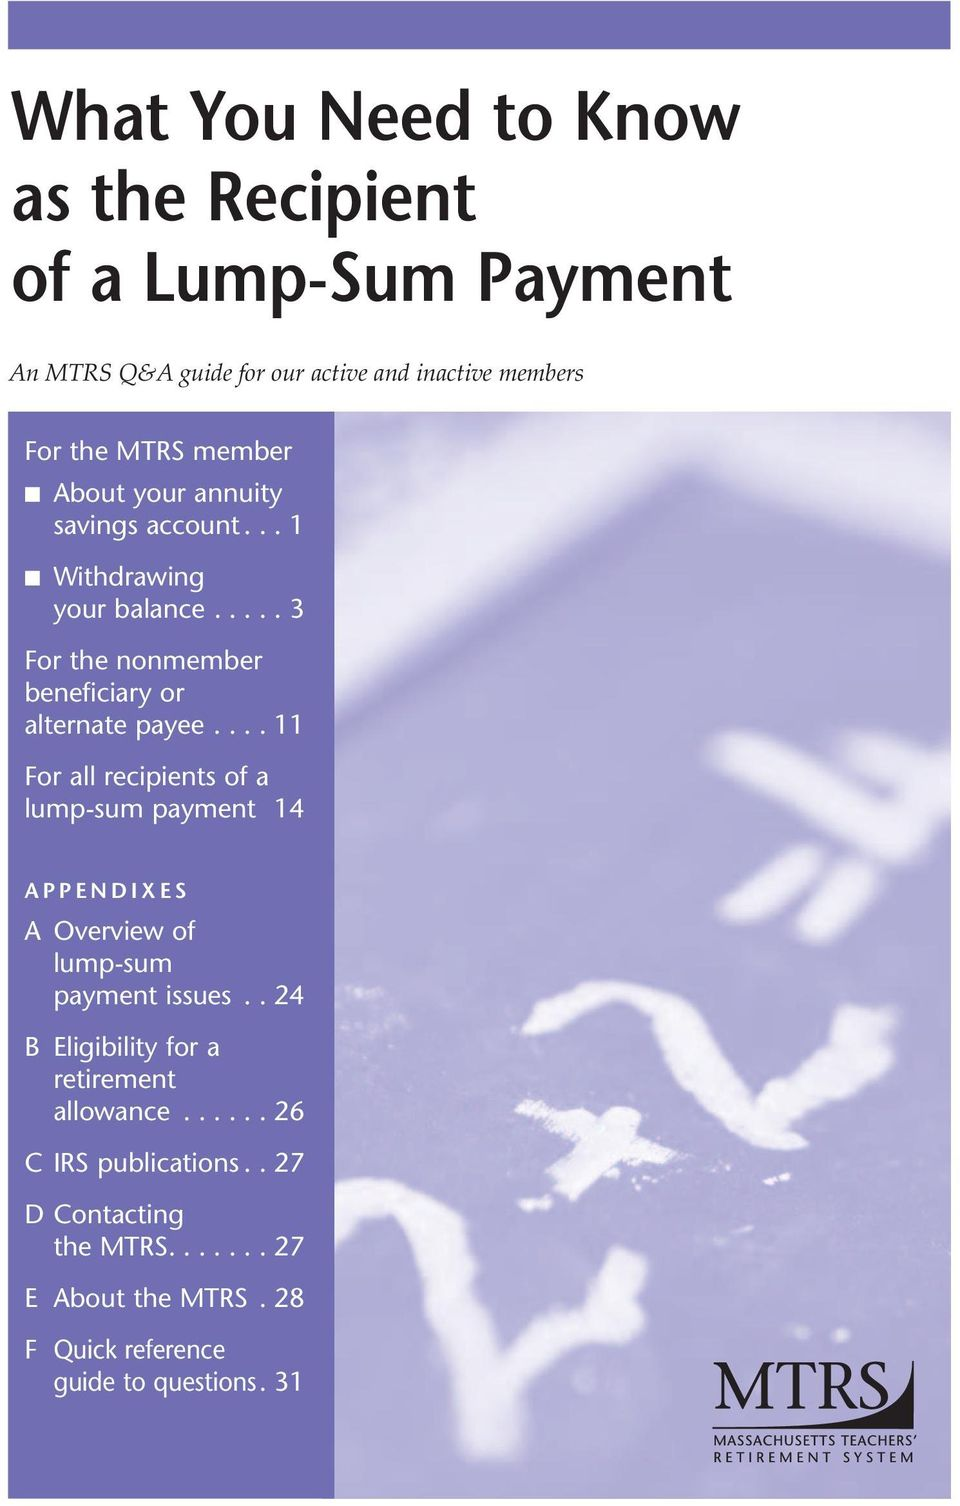 ... 11 For all recipients of a lump-sum payment 14 APPENDIXES A Overview of lump-sum payment issues.